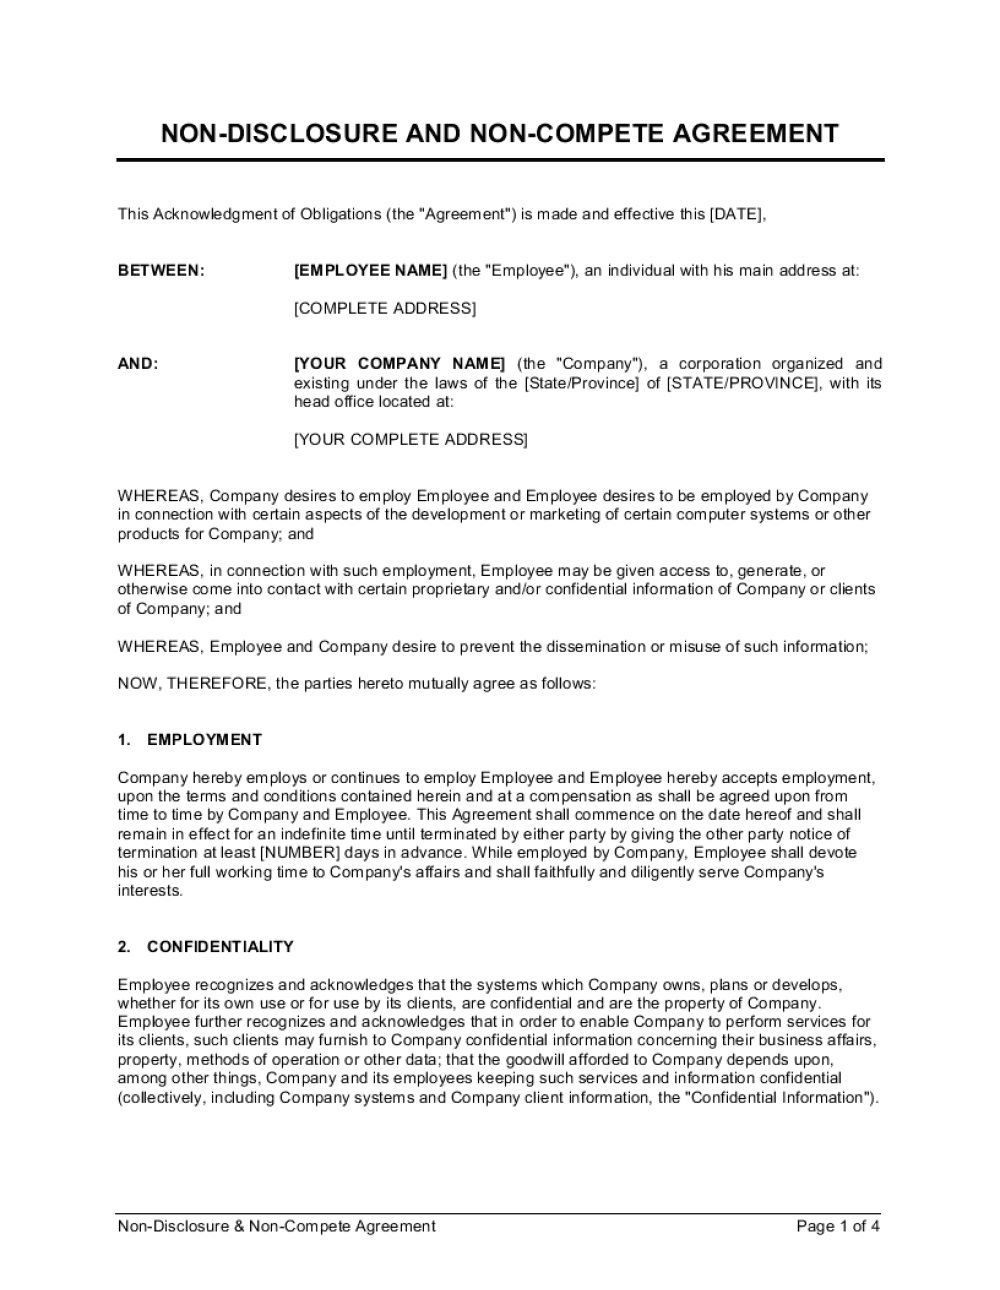 008 Archaicawful Employee Non Compete Agreement Template Example  Free Confidentiality Non-compete DisclosureFull